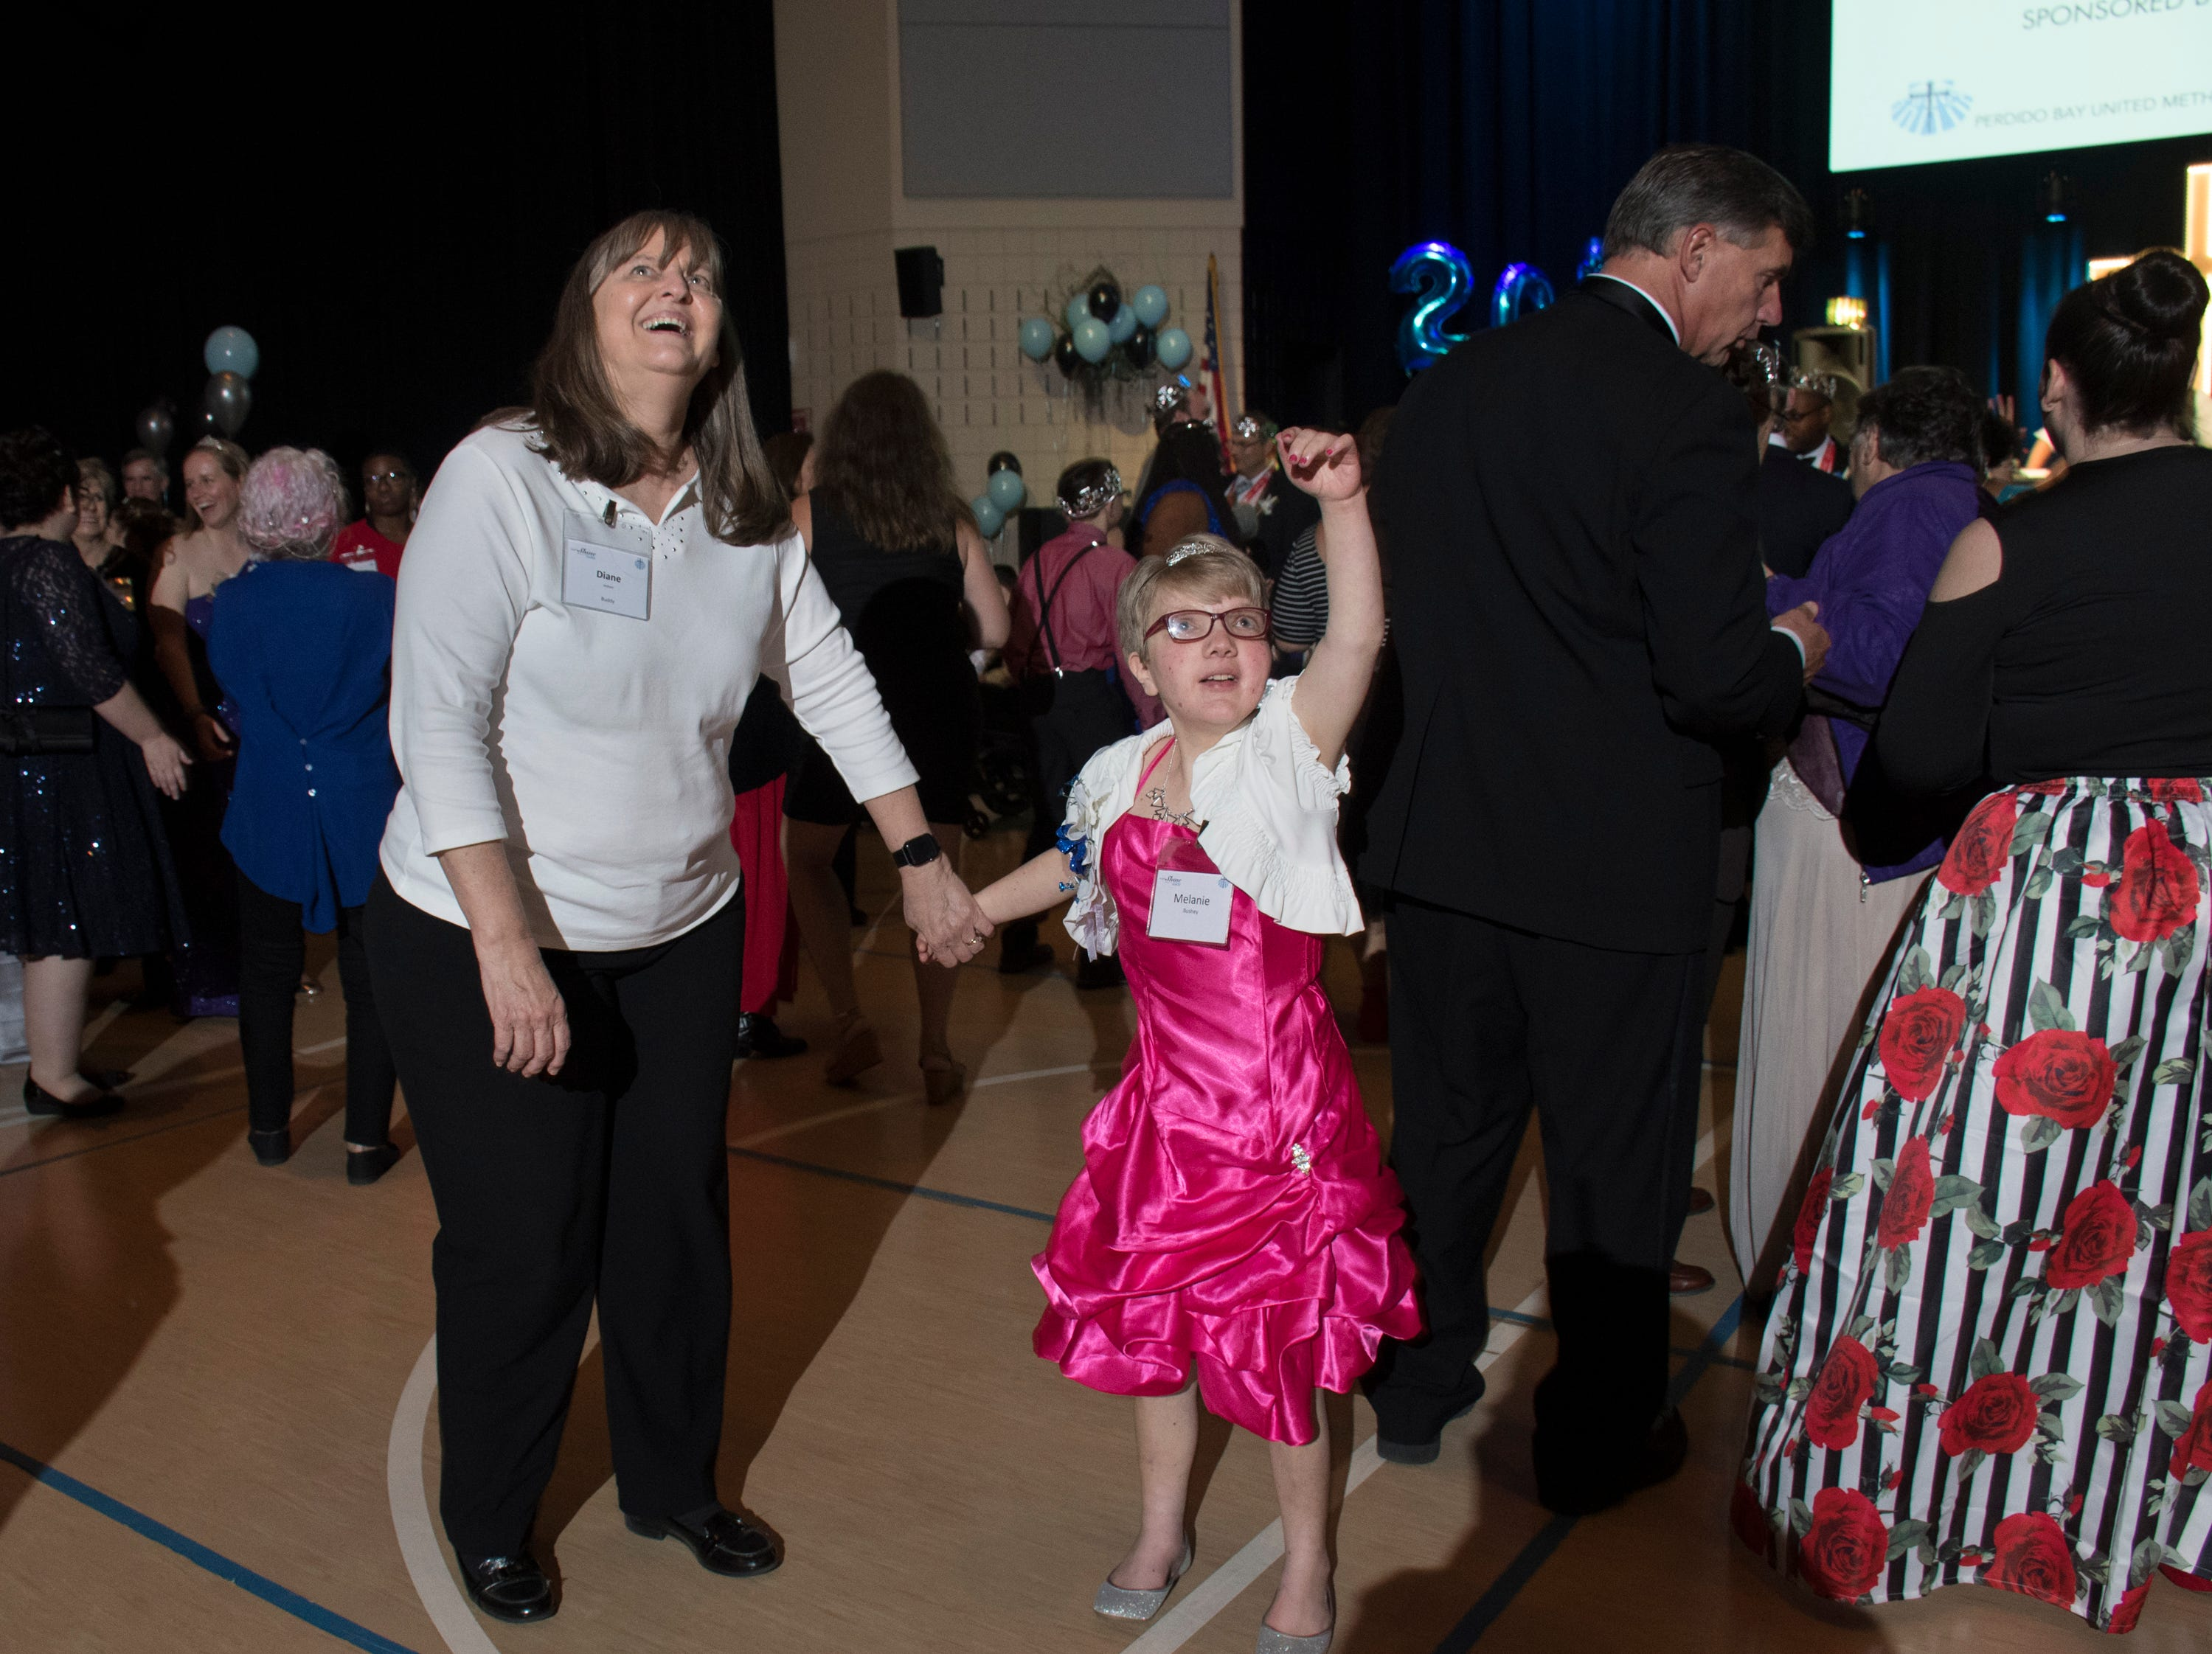 Melanie Bushey waves to her family as she dances with her buddy Diane during the Night to Shine prom for people with special needs sponsored by the Tim Tebow Foundation at Perdido Bay United Methodist Church in Pensacola on Friday, February 8, 2019.